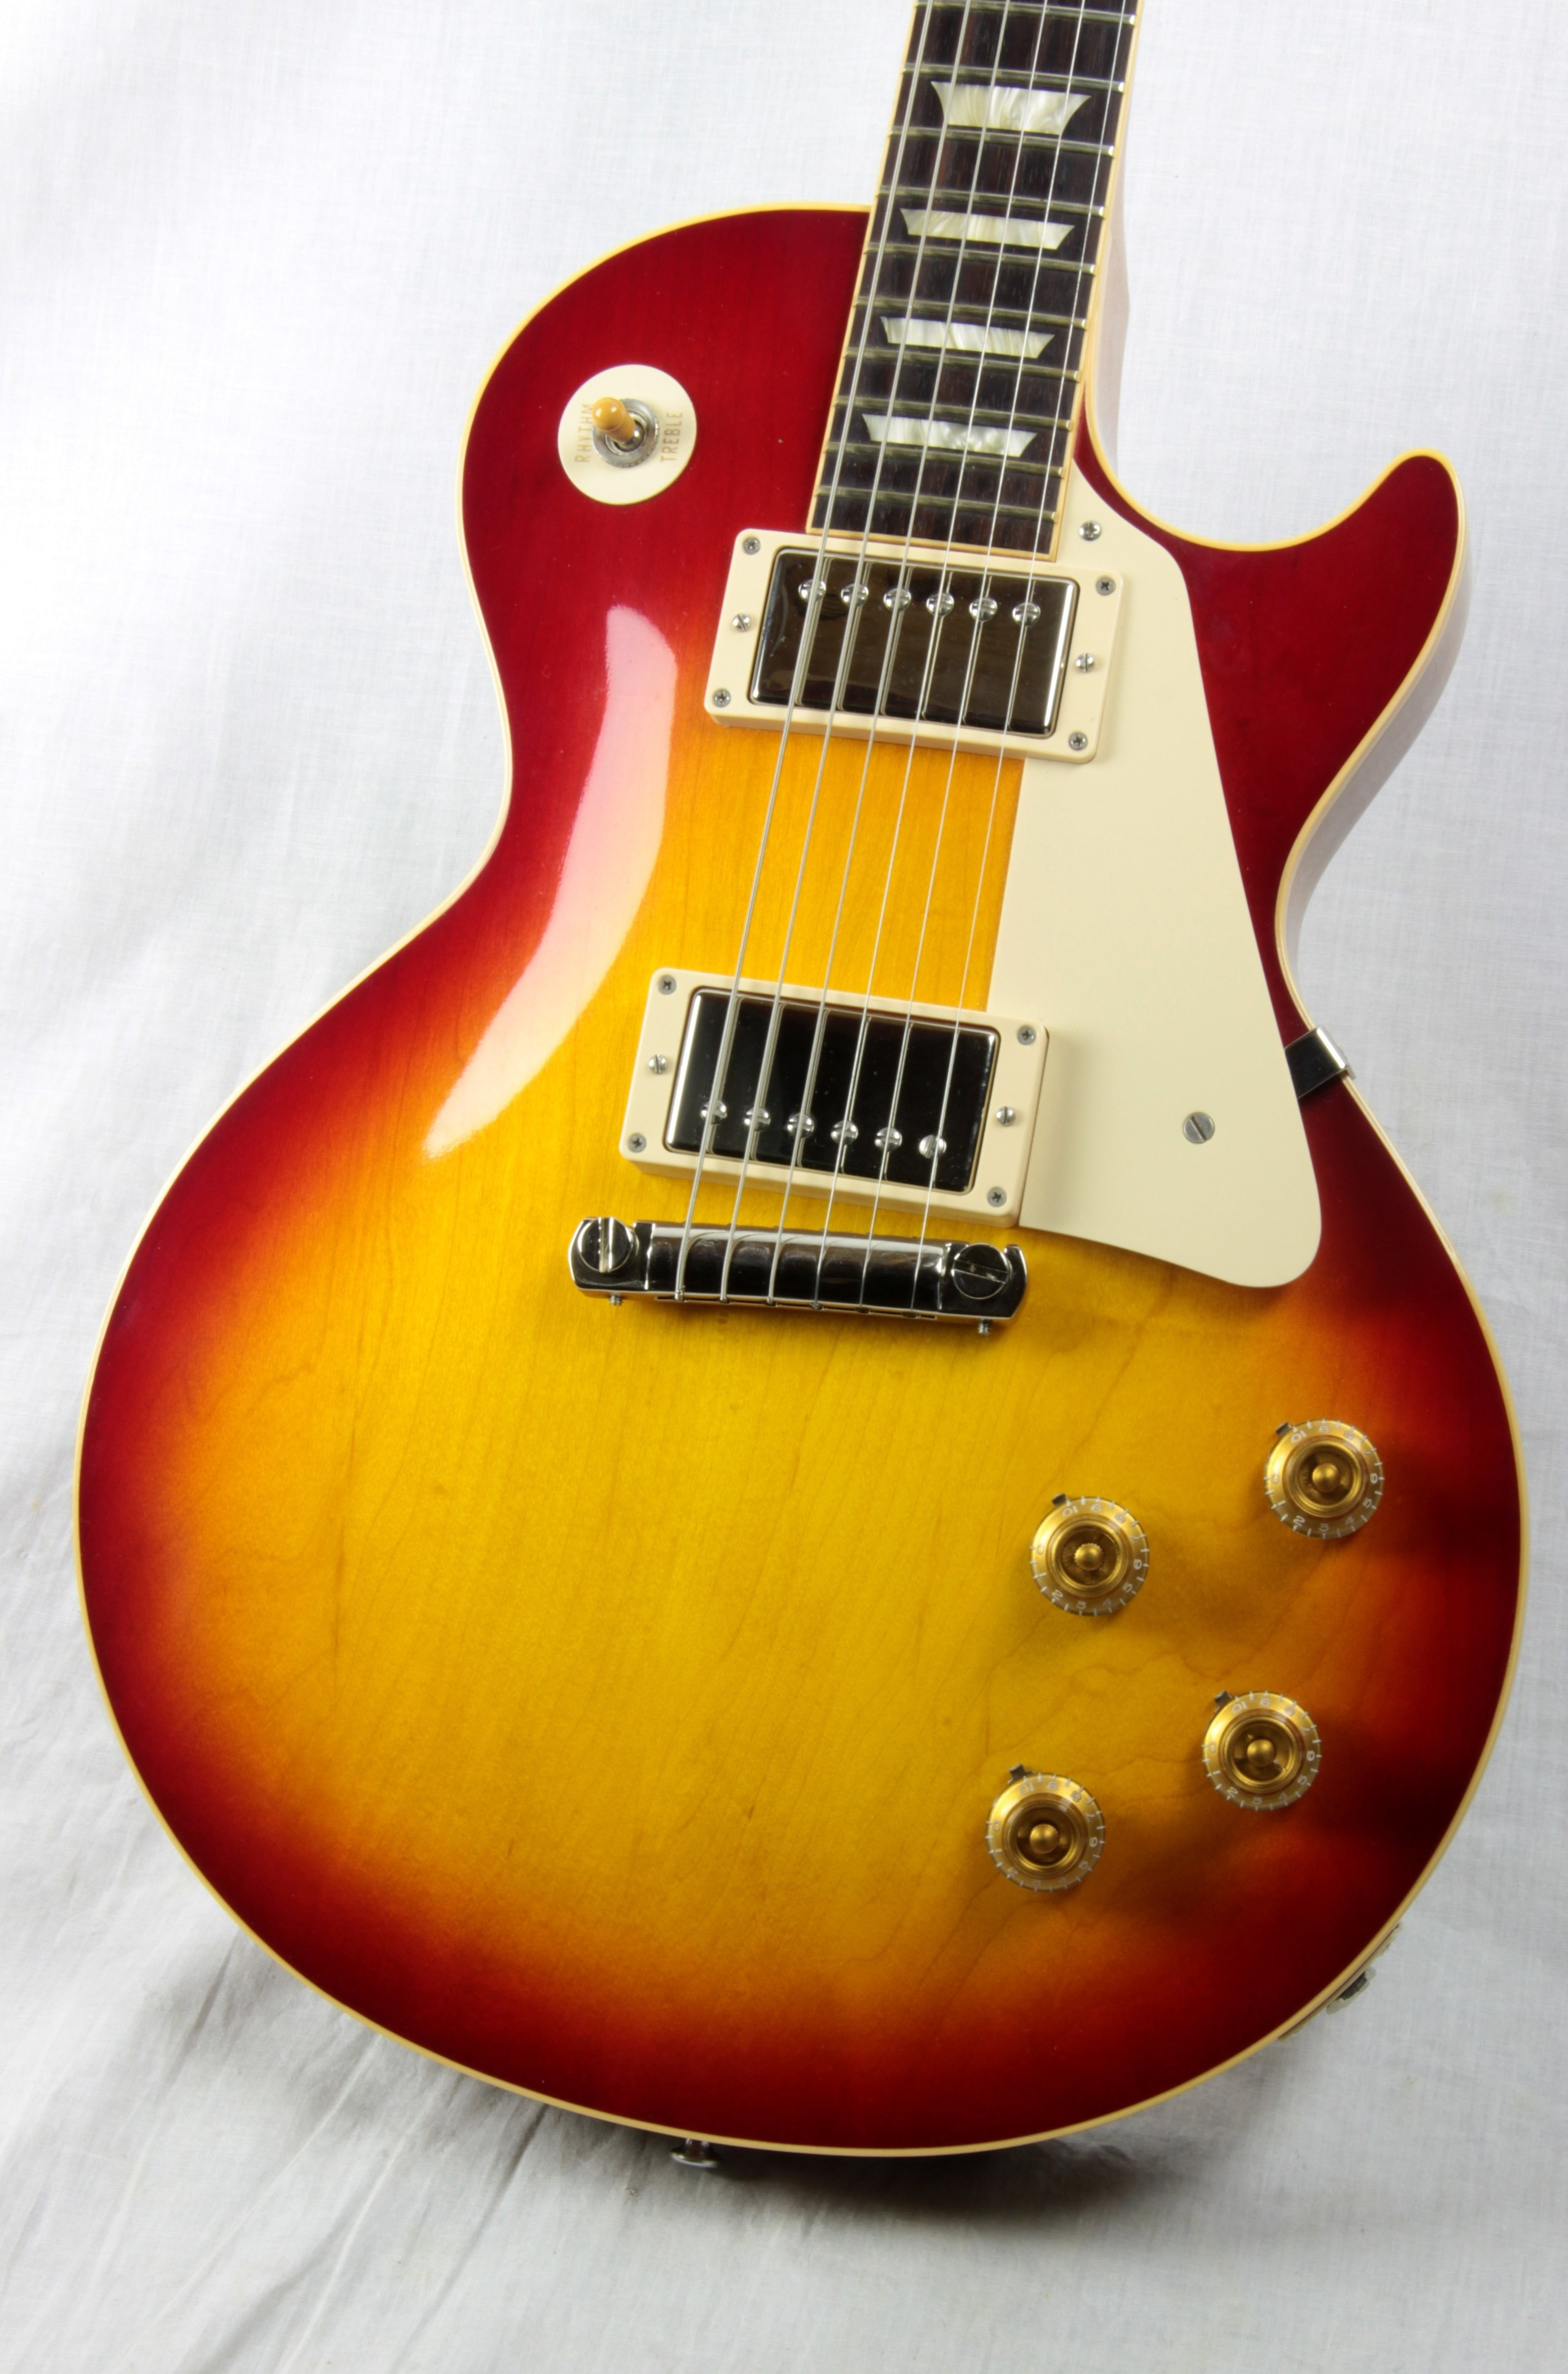 2010 Gibson '55 Reissue Les Paul HOT MOD Custom Shop Historic LP R9 59 1955